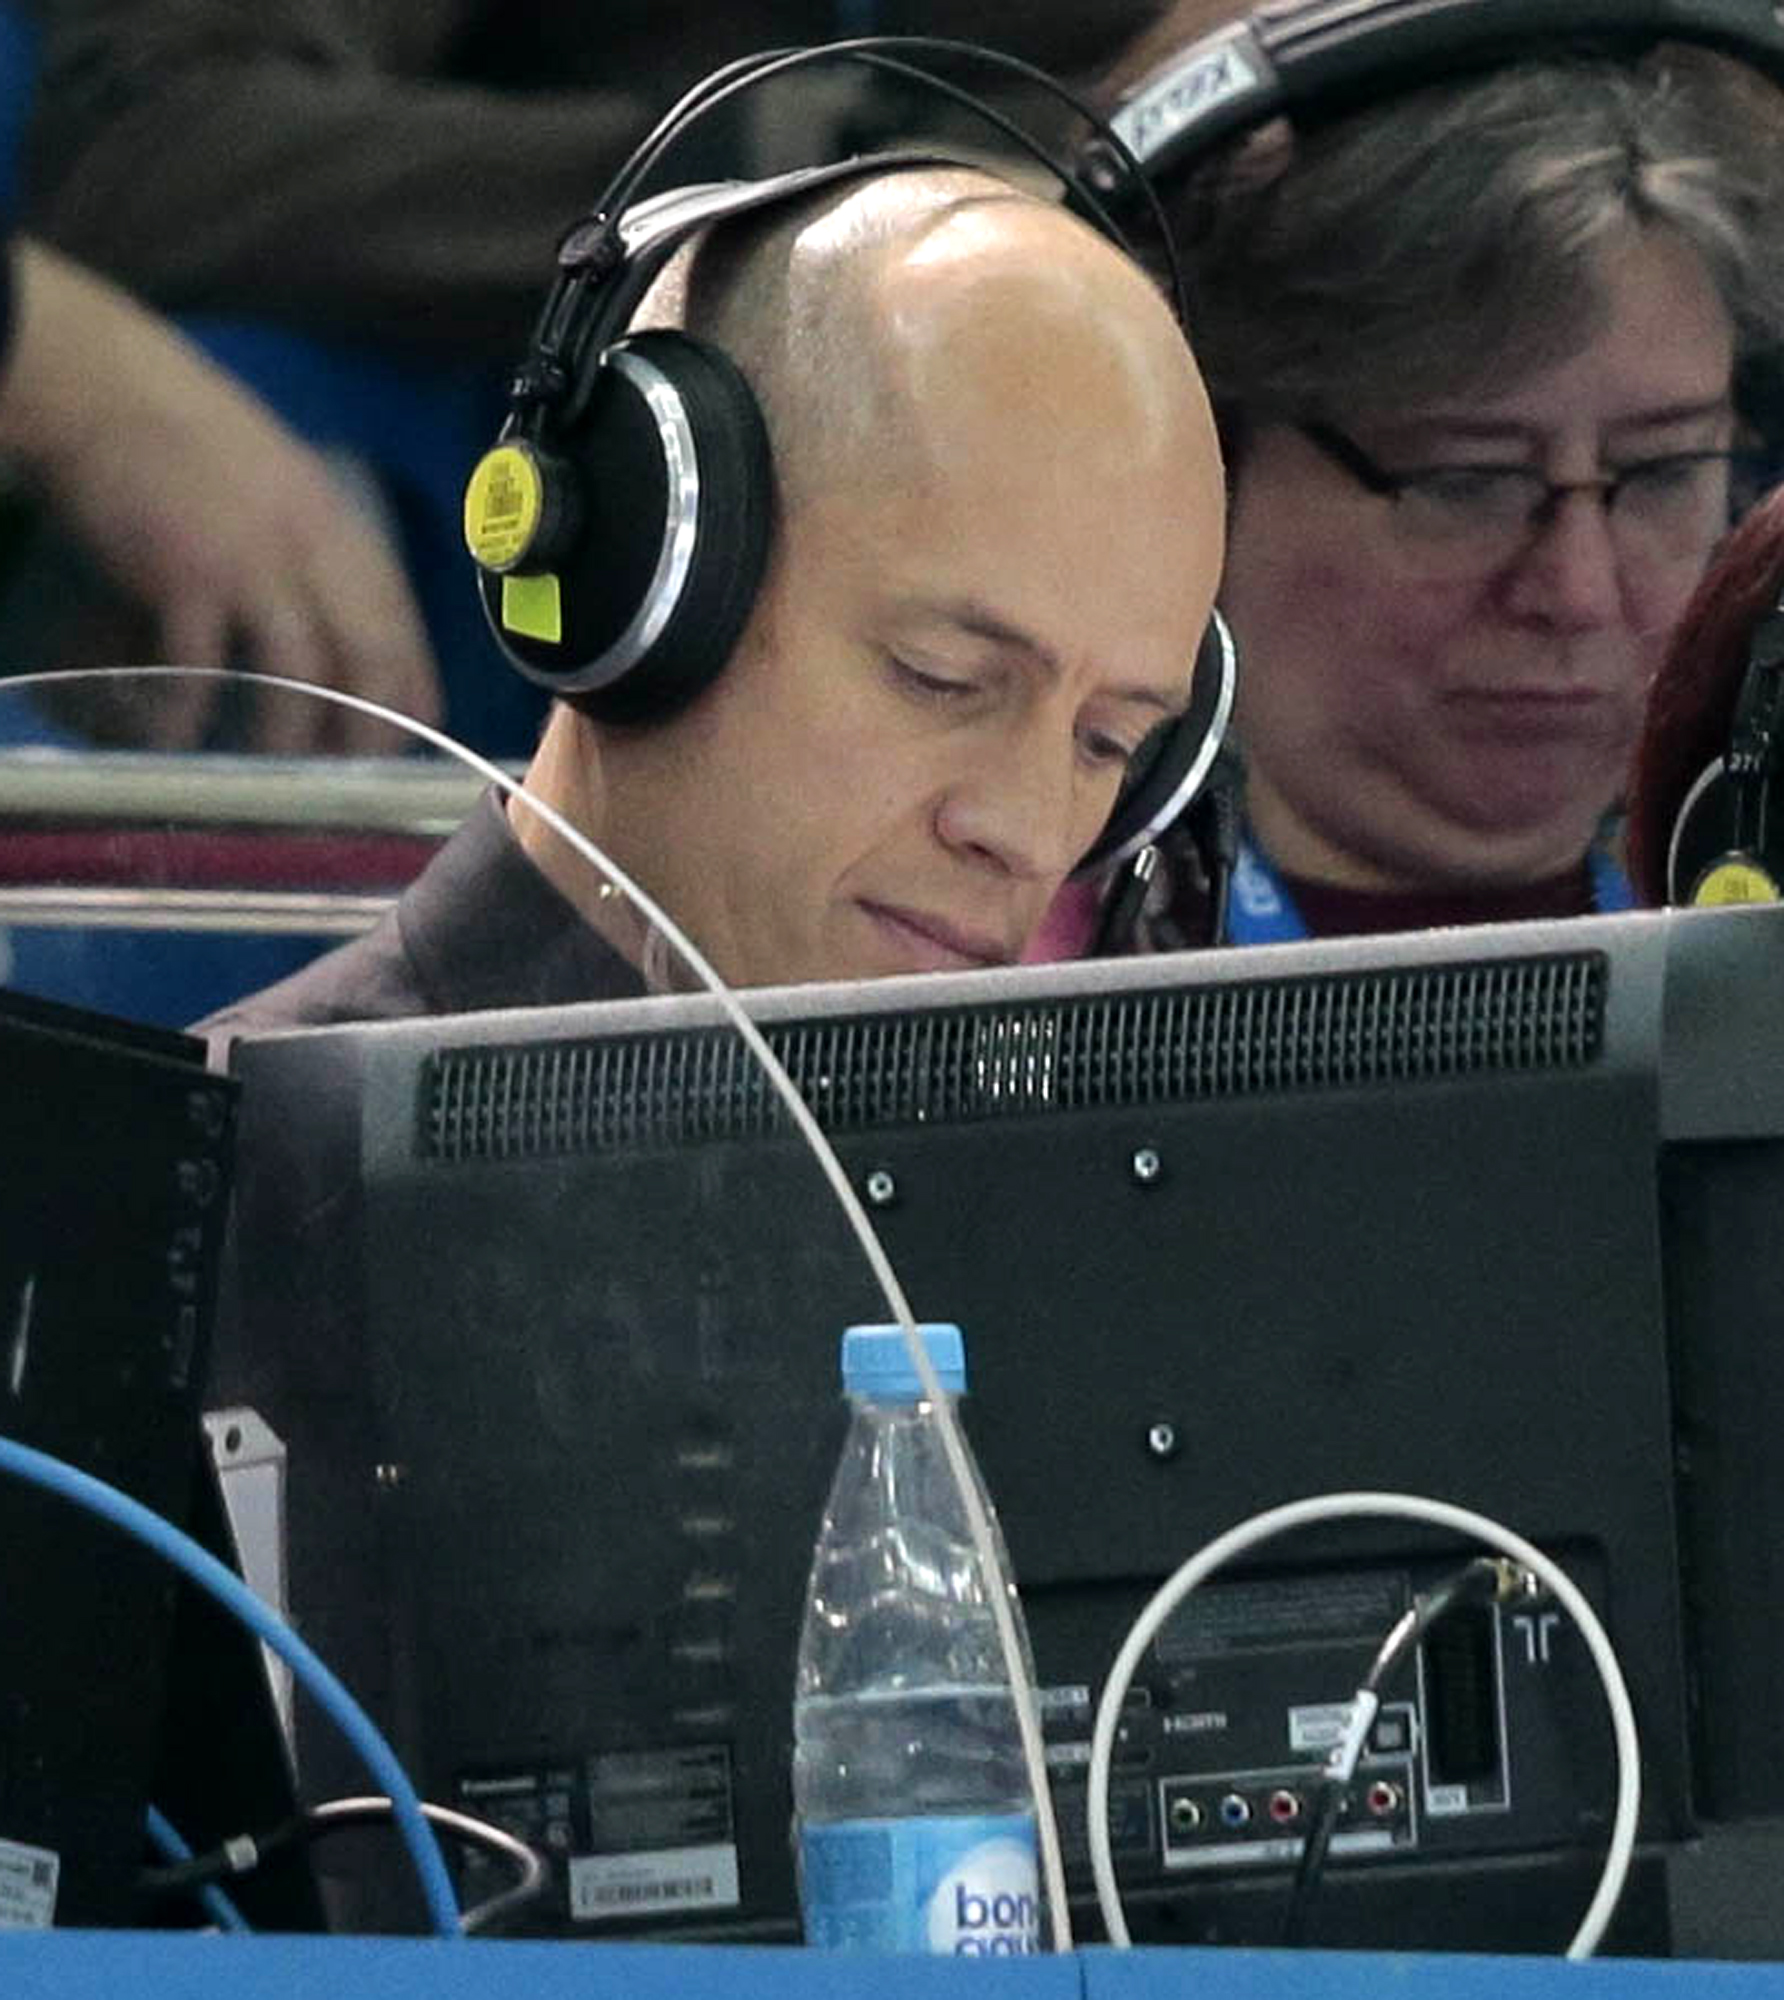 """In this Feb. 13, 2014 photo, former U.S. Olympic figure skater Scott Hamilton works as a commentator for NBC television during the men's short program figure skating competition at the 2014 Winter Olympics in Sochi, Russia. Thirty years ago, Hamilton won the figure skating gold medal in Sarajevo. His victory was the culmination of a four-year winning streak that would seem impossible nowadays. """"Everything I did in those four years peaked at the Olympics,"""" he says. (AP Photo/Ivan Sekretarev)"""